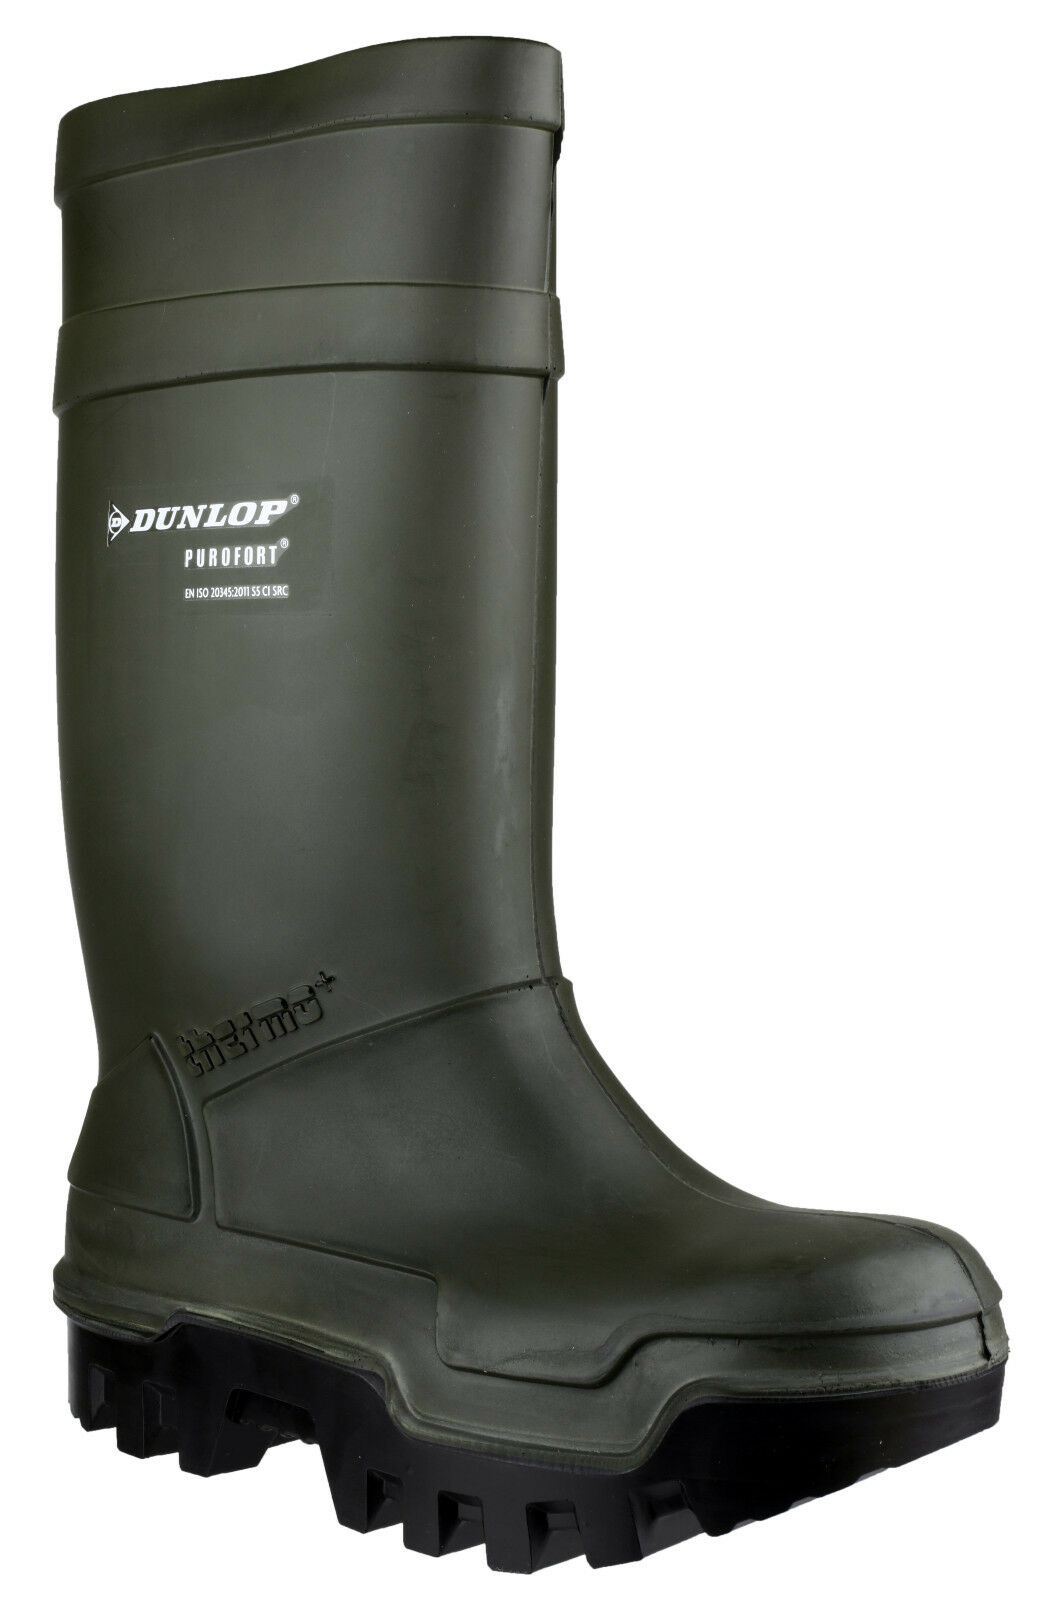 Dunlop Purofort Thermo+ Full Safety Unisex Green Pull On Wellington Boots UK5-13